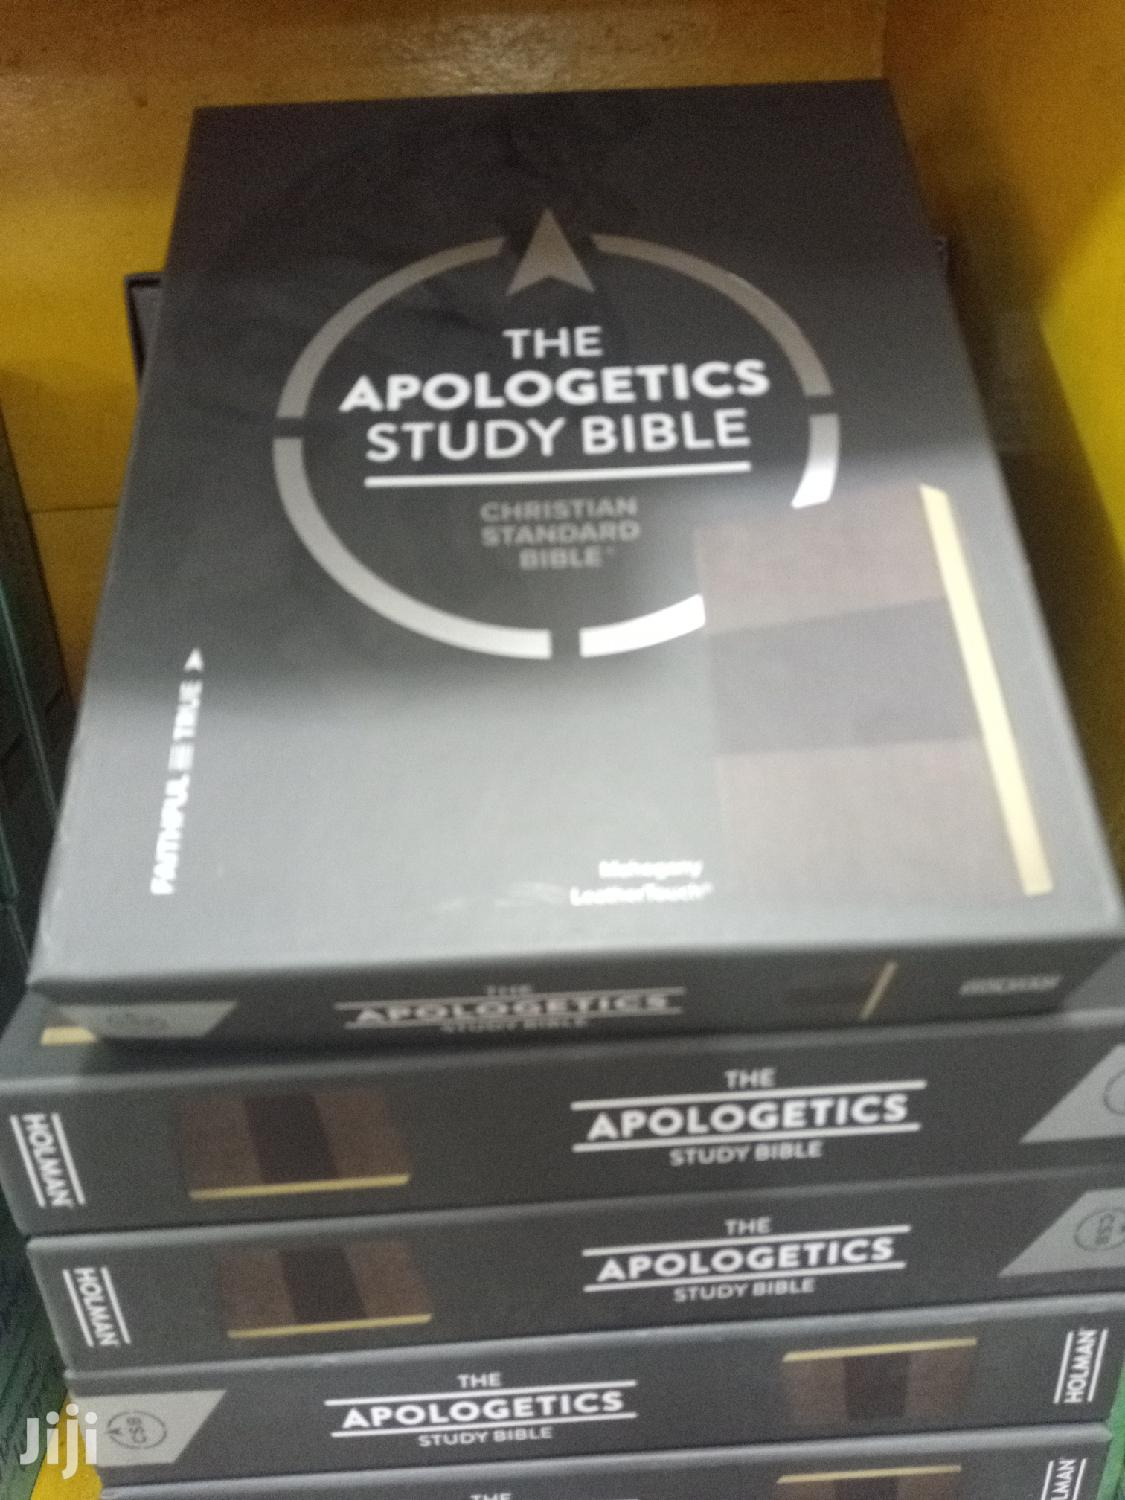 The Apologetic Study Bible | Books & Games for sale in Airport Residential Area, Greater Accra, Ghana